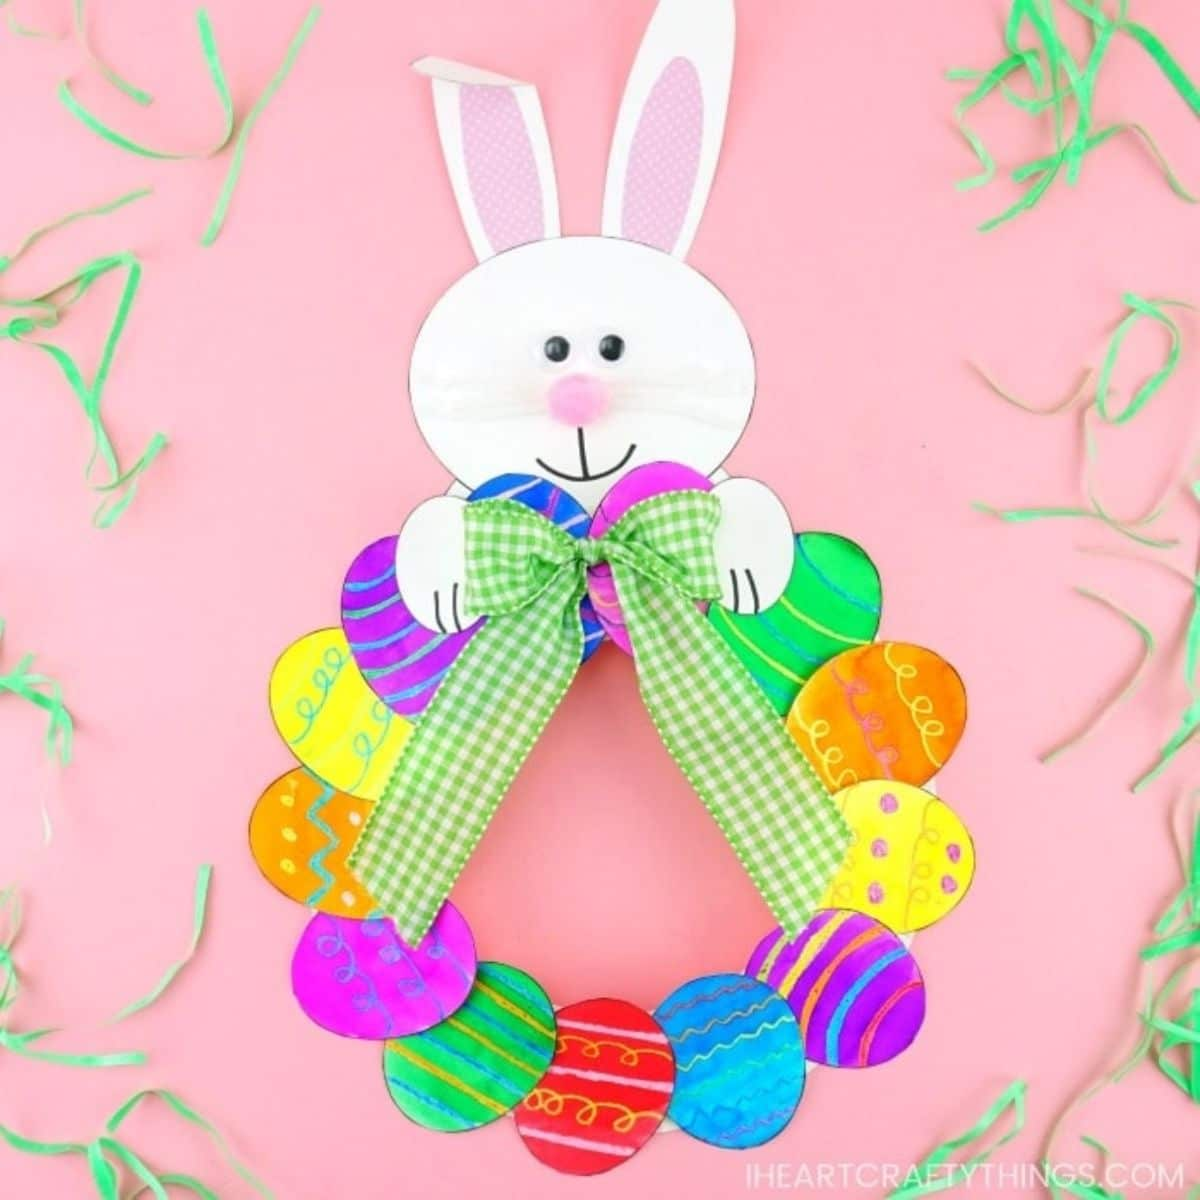 On a pink background a curcle made of colored paper eggs sits underneath a bunny's head